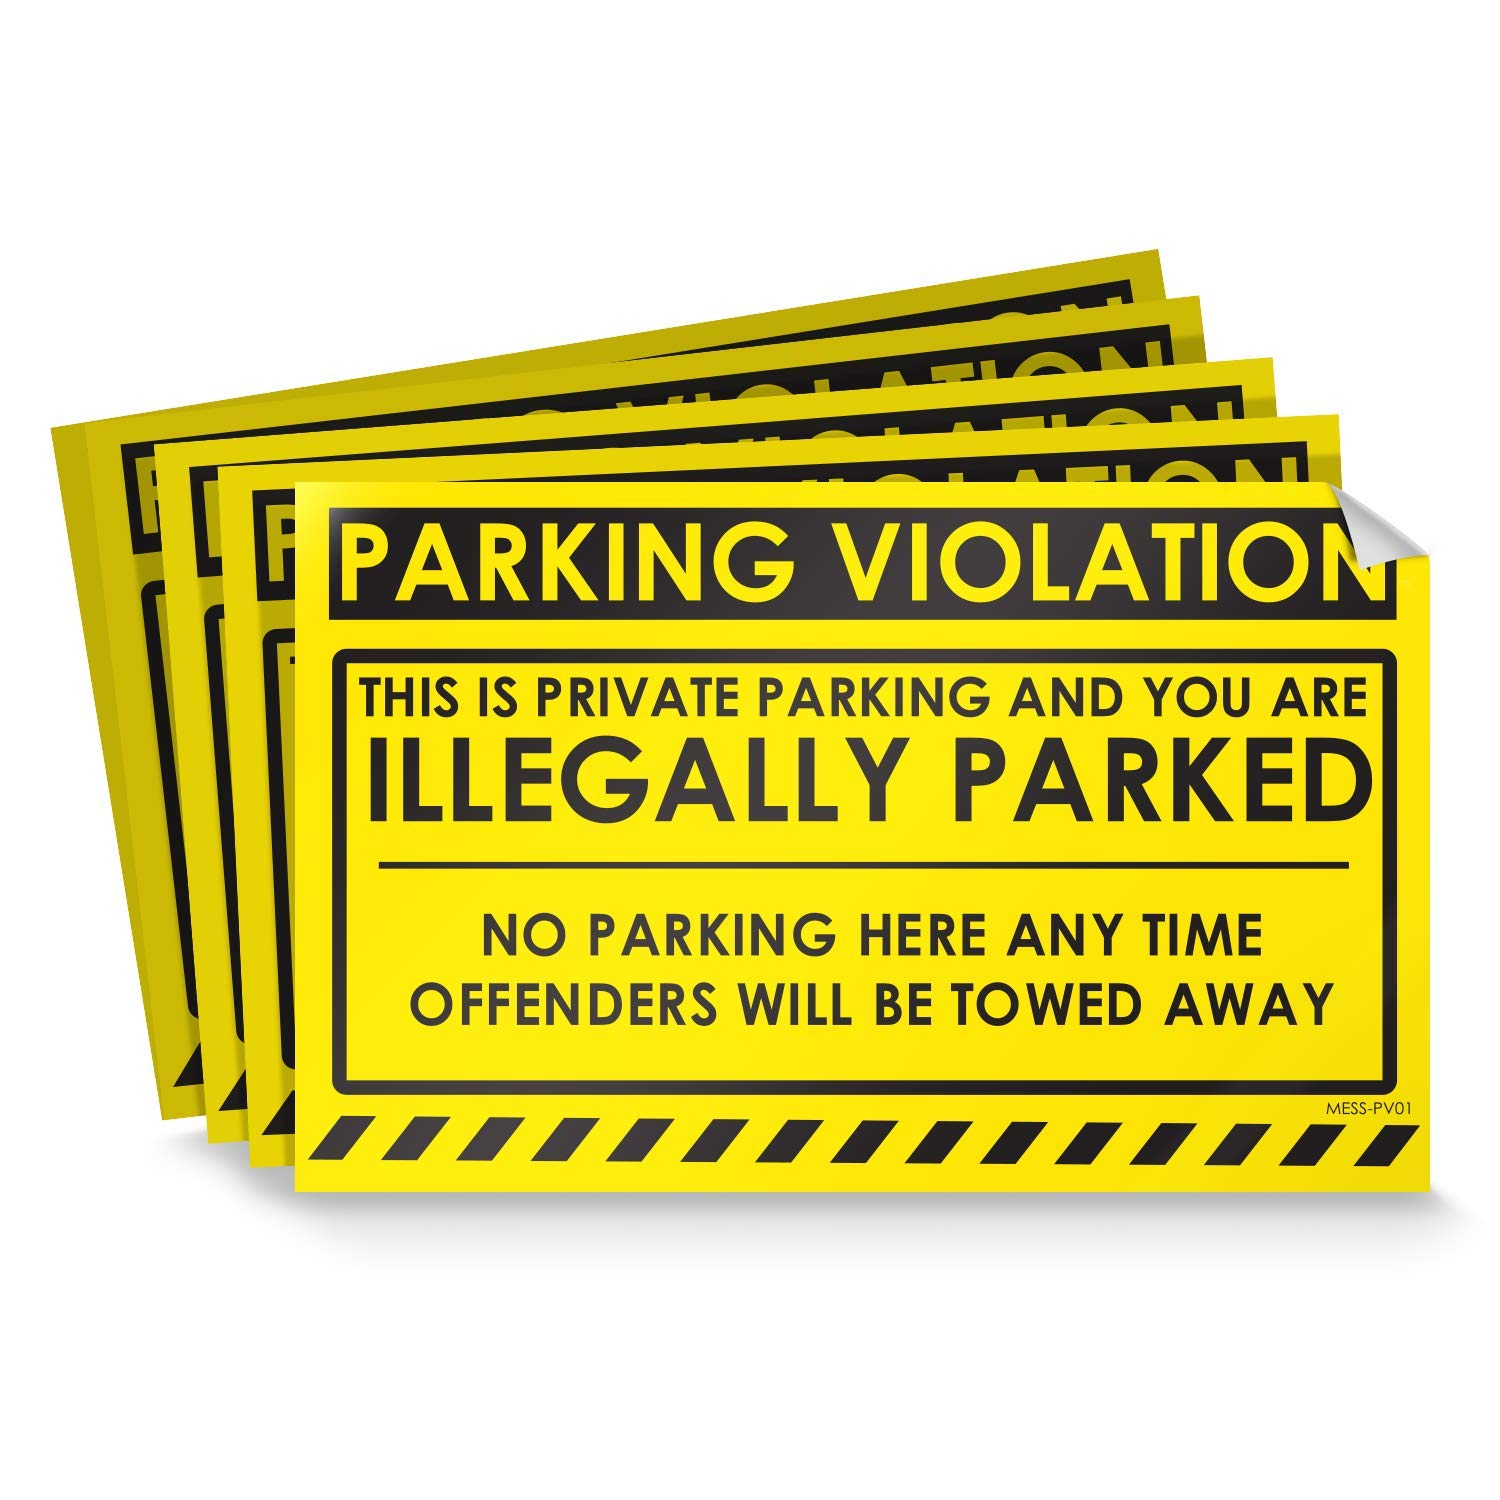 Parking violation stickers for cars fluorescent yellow 100 no parking illegally parked cars in private parking areas hard to remove super sticky no park